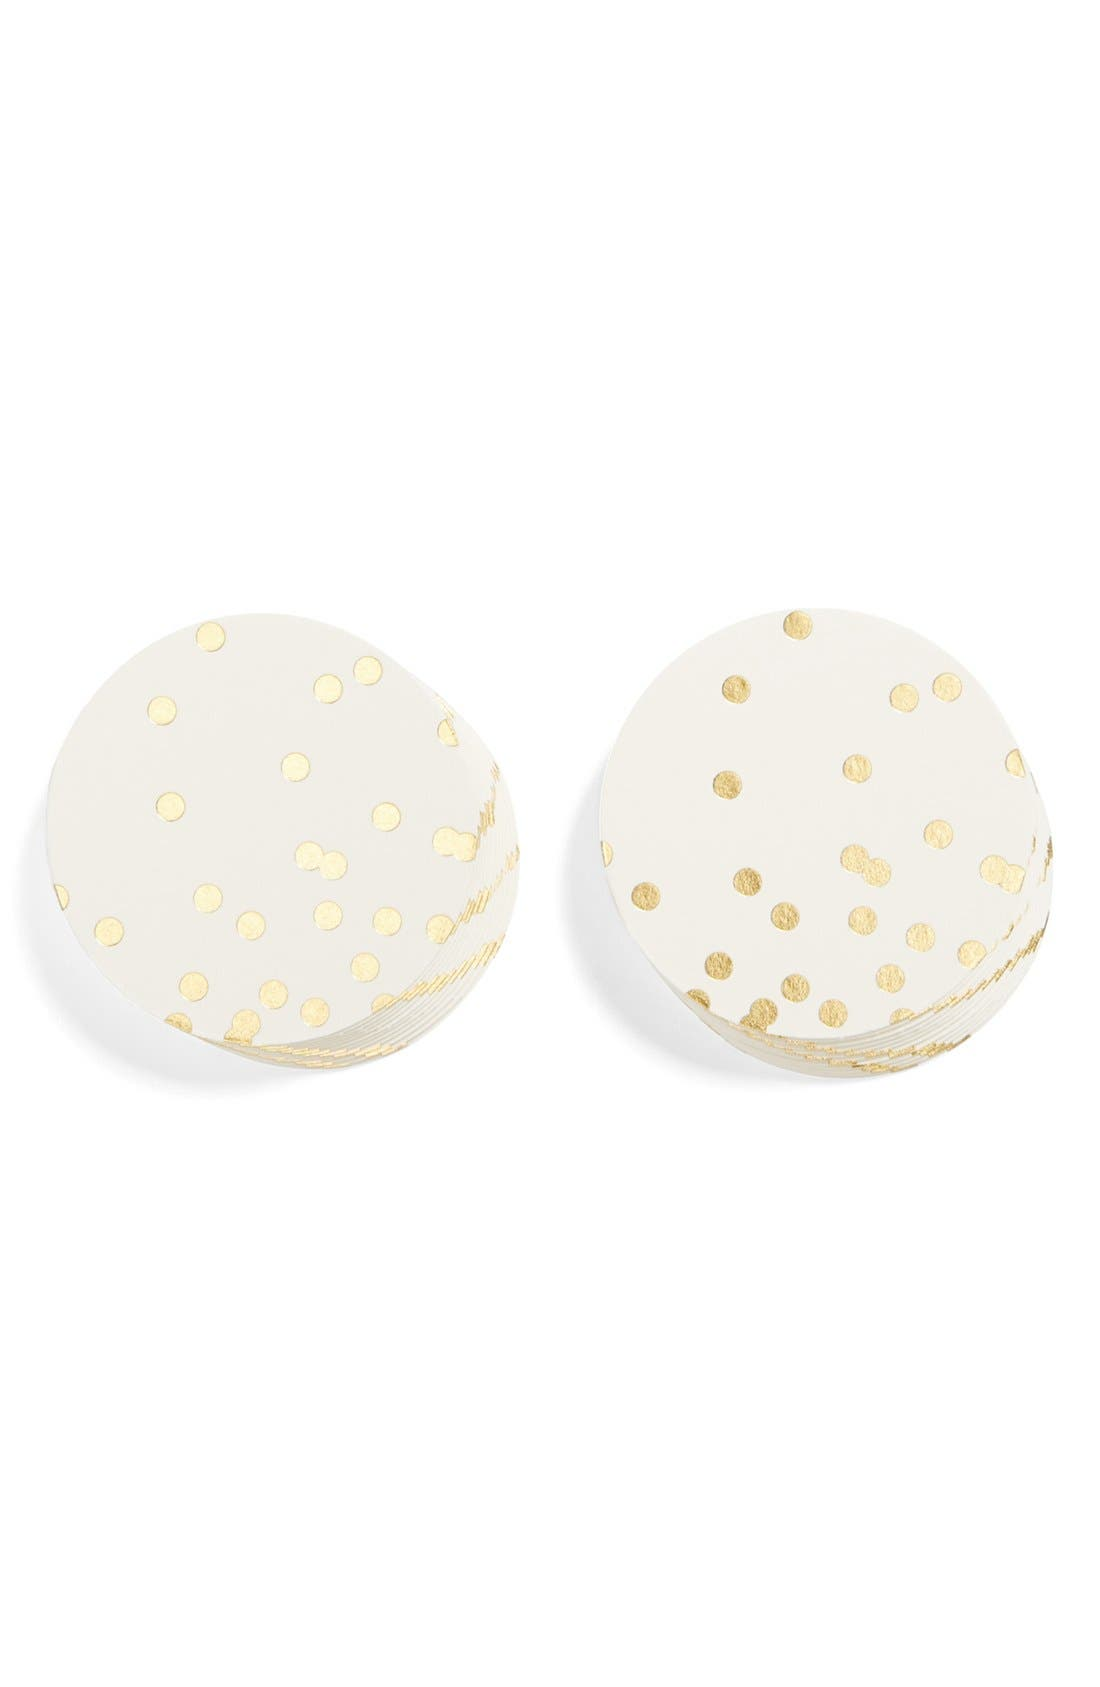 Main Image - kate spade new york party coasters (set of 24)